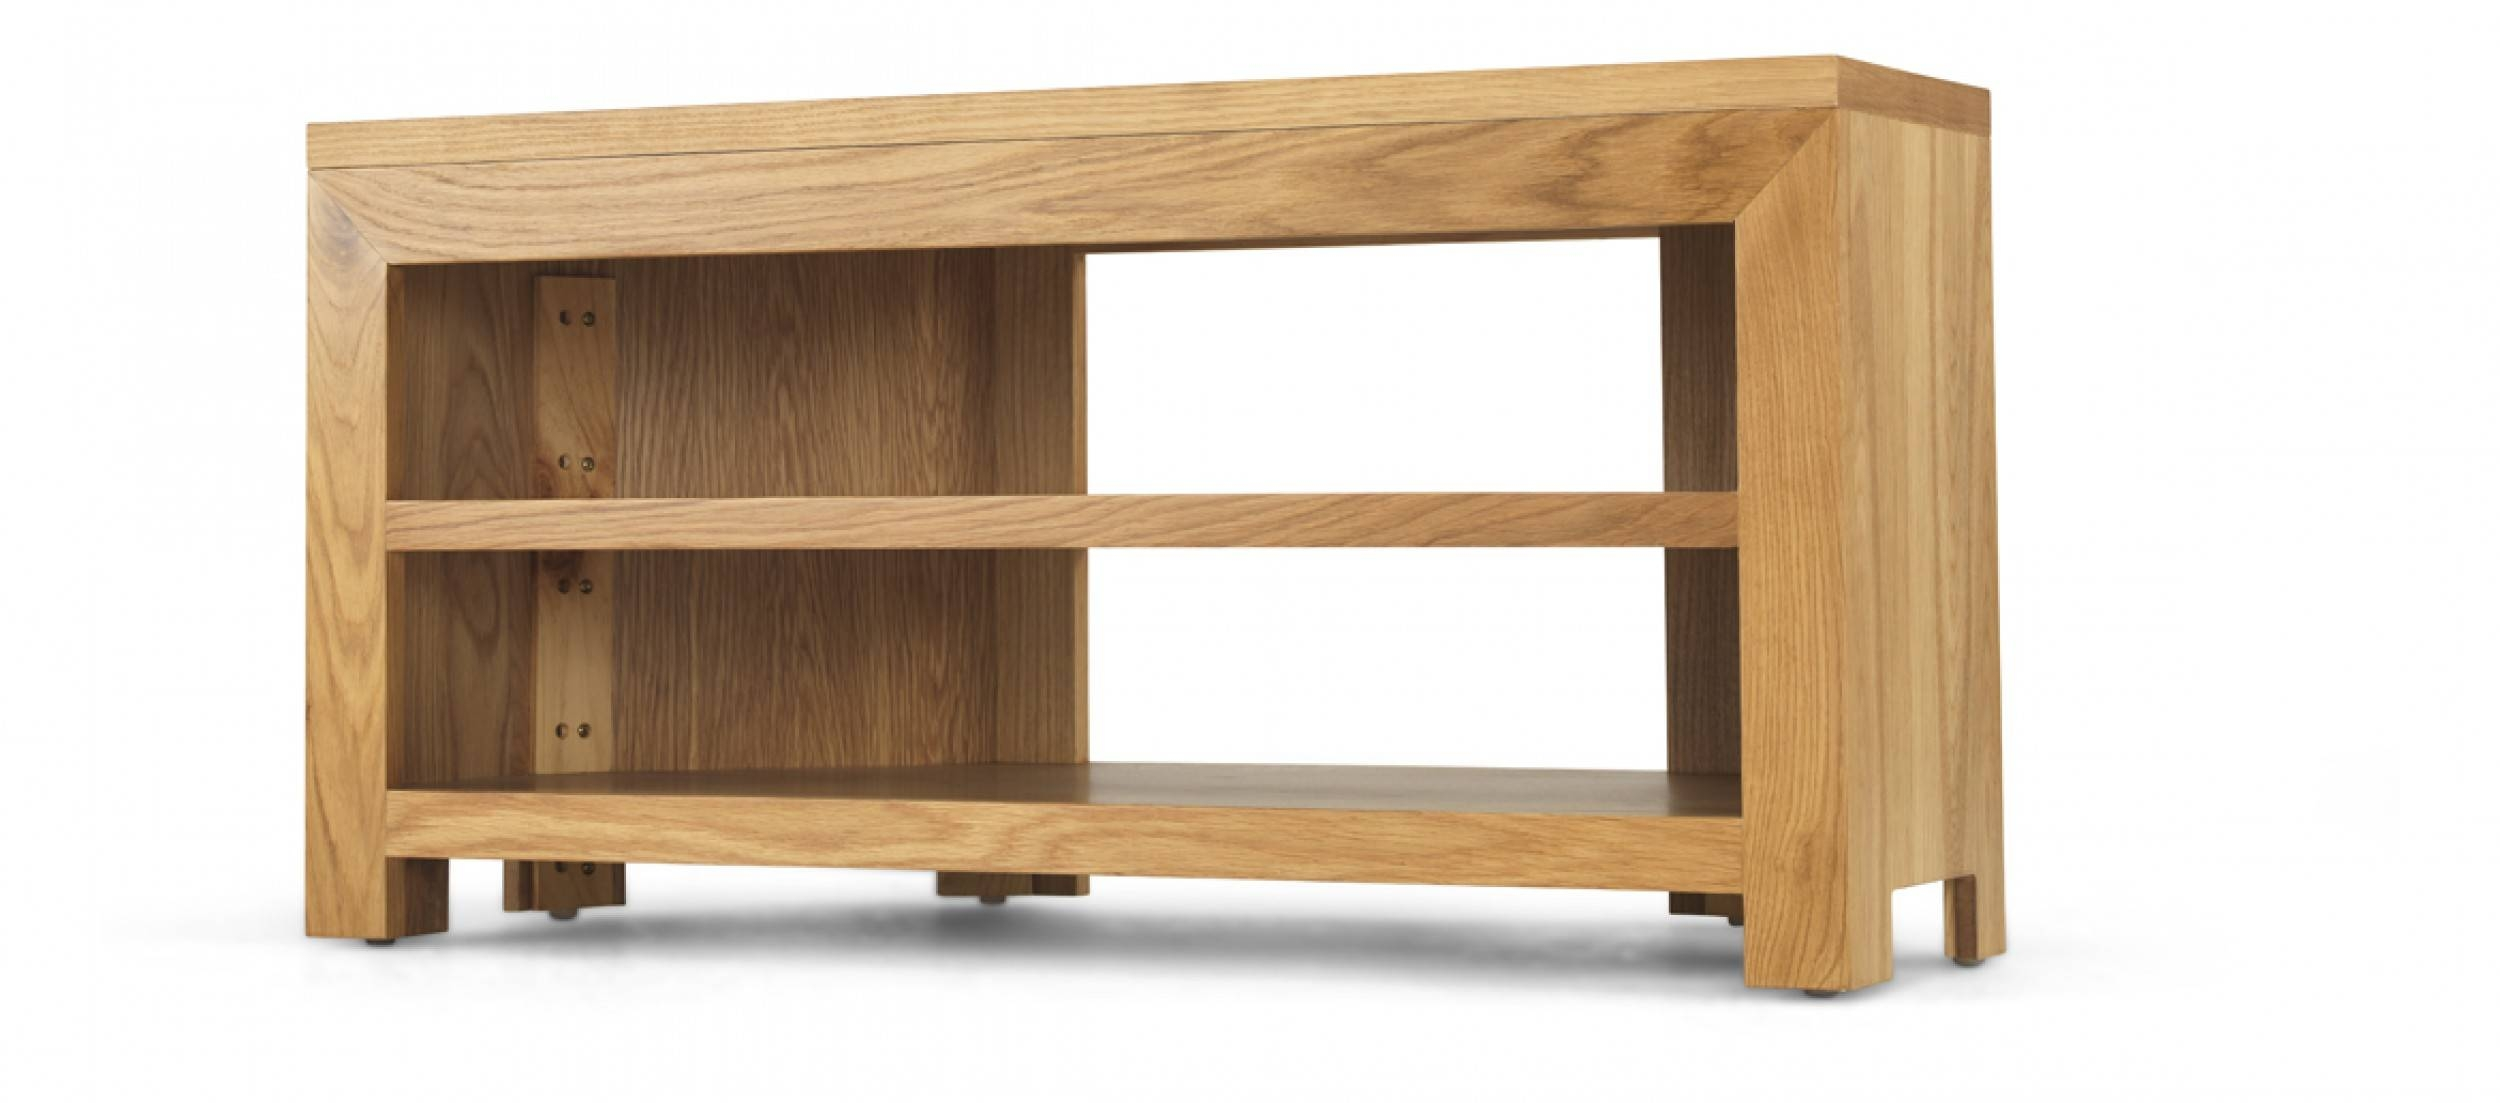 Cube Oak Open Corner Tv Unit | Quercus Living with regard to Corner Sideboard Units (Image 17 of 30)